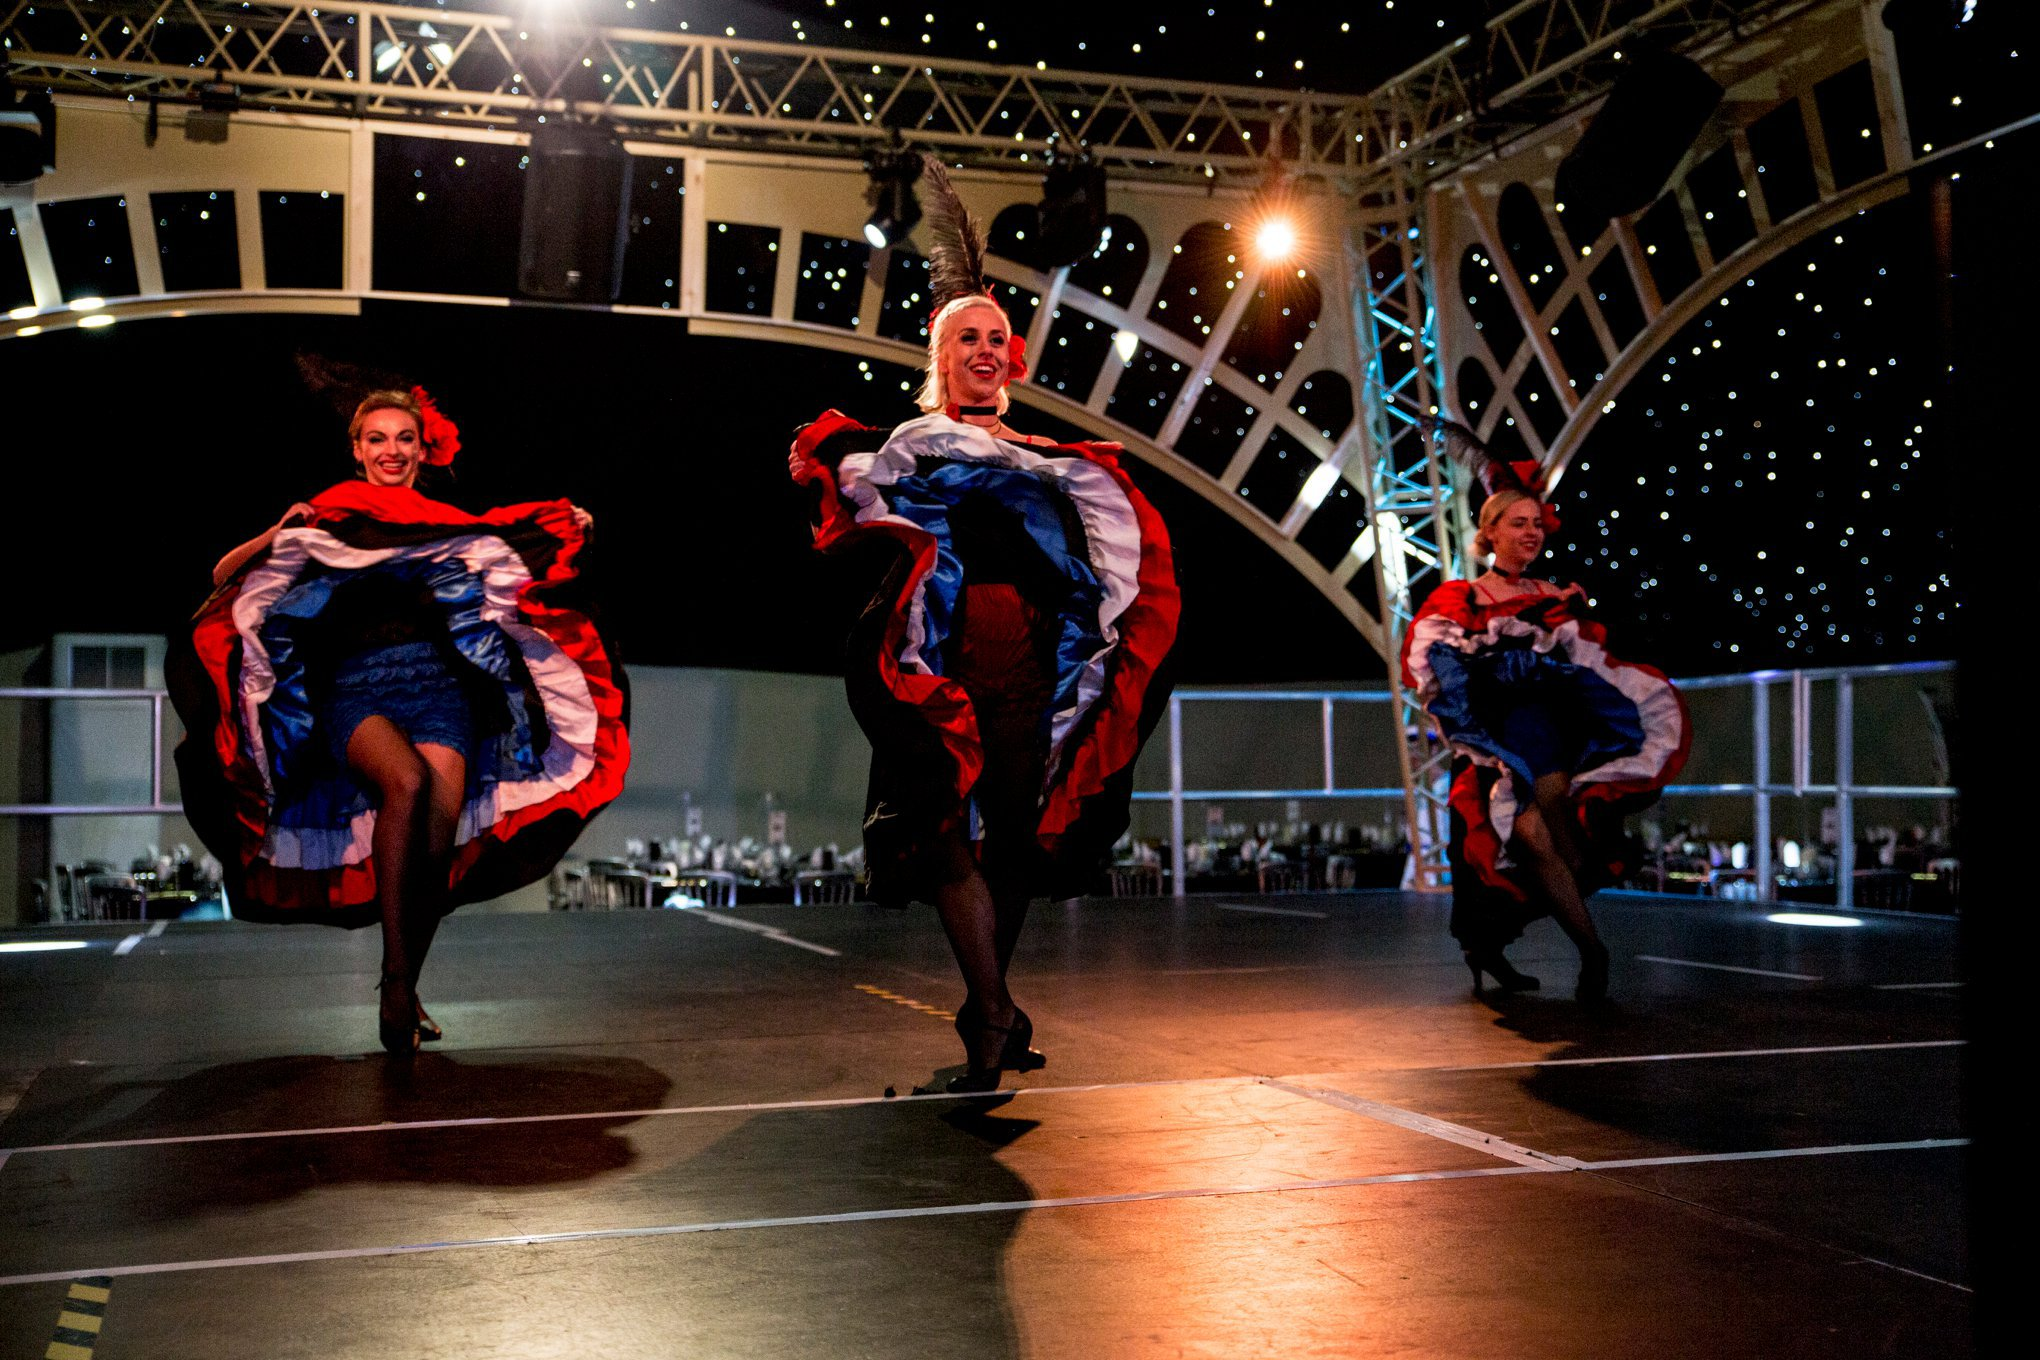 The Gatsby Girls - Can Can Dancers - London - Europe